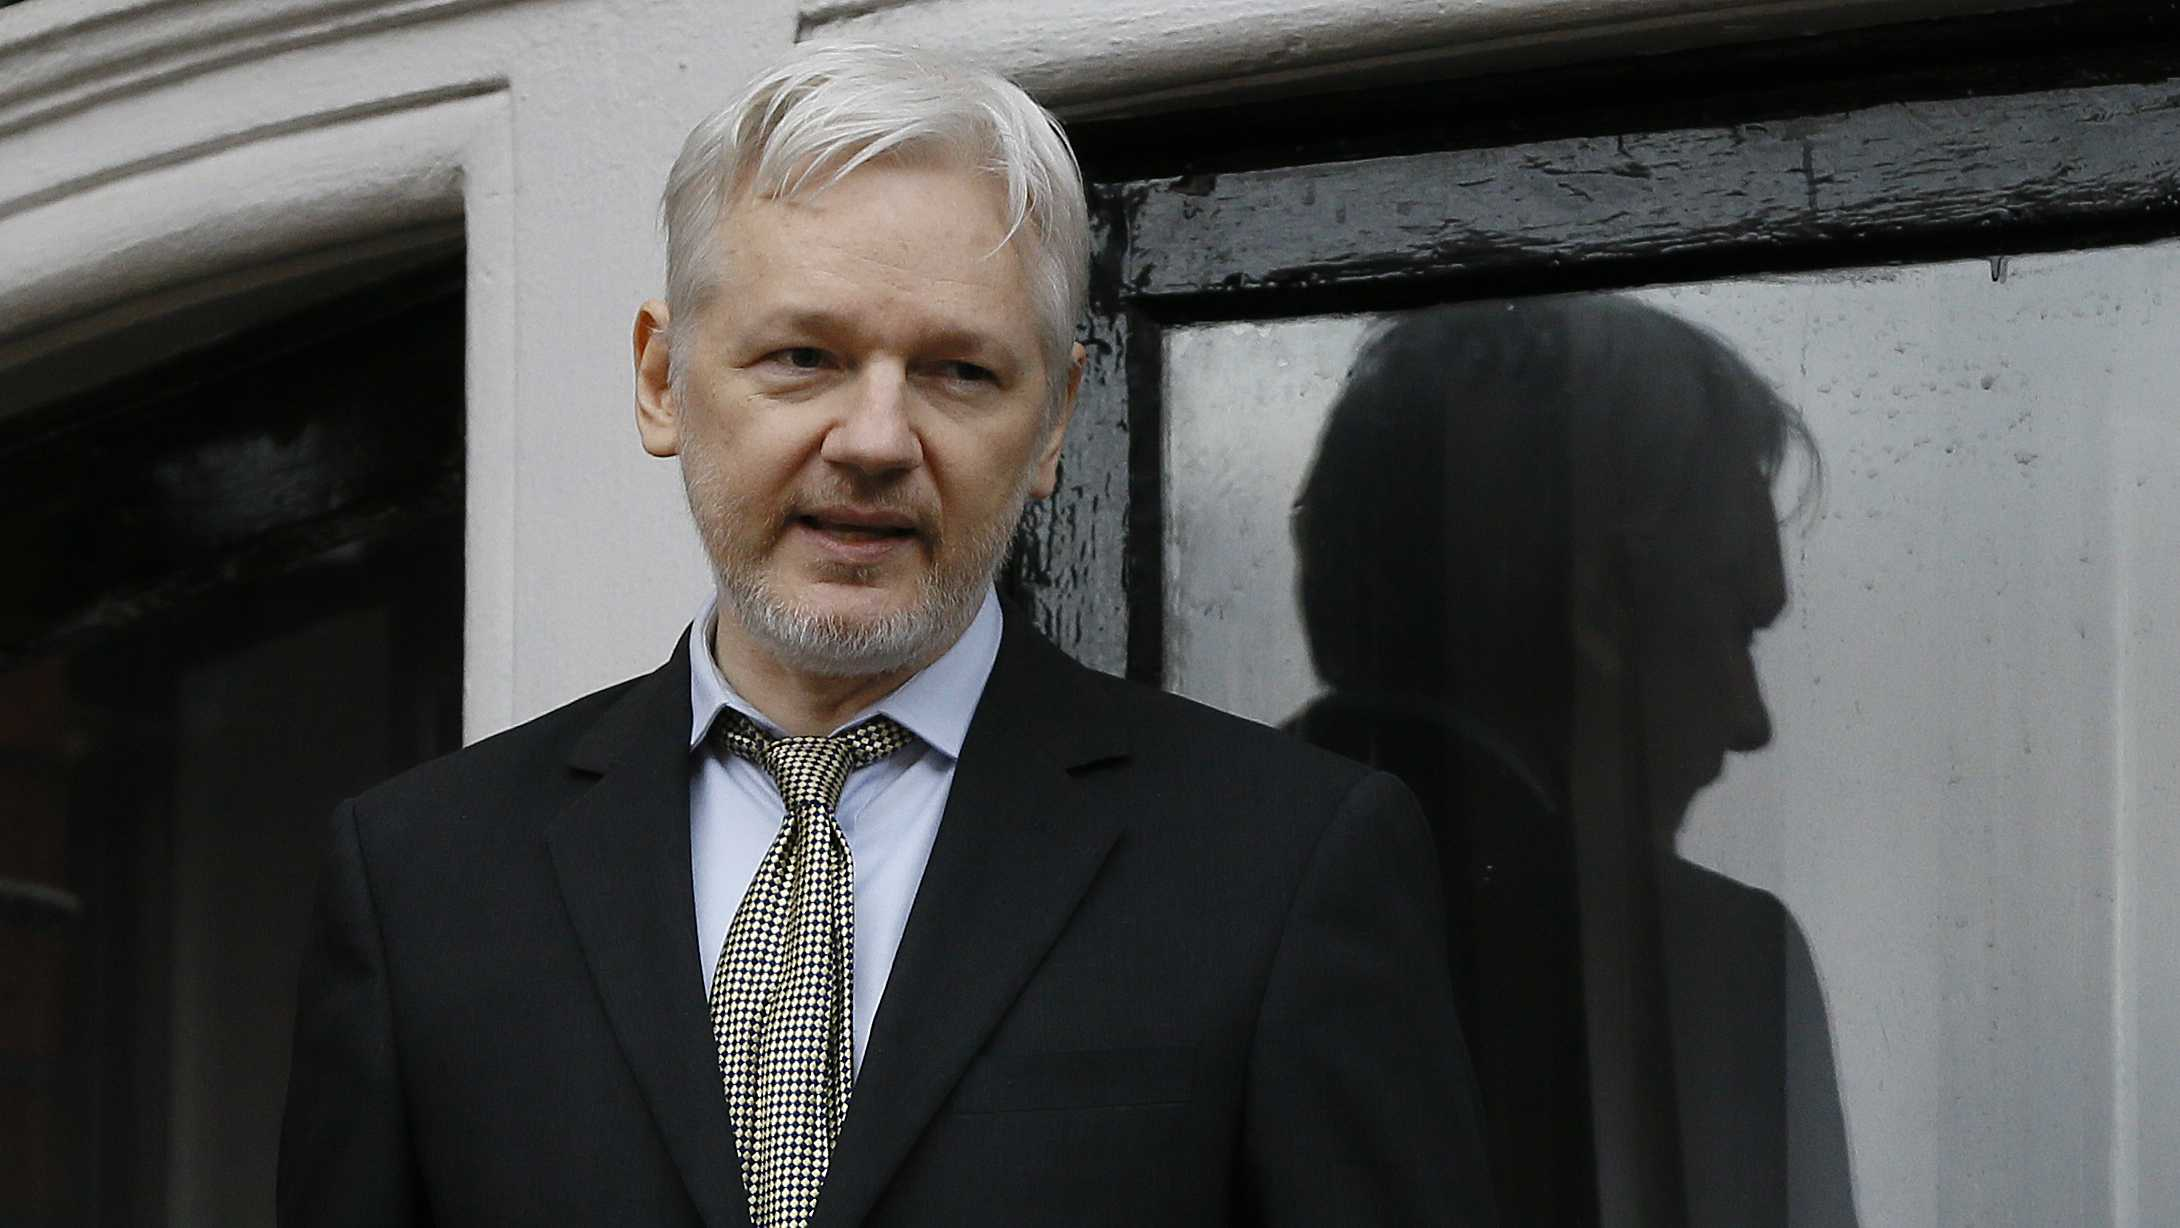 In this Feb. 5, 2016 file photo, WikiLeaks founder Julian Assange speaks from the balcony of the Ecuadorean Embassy in London.